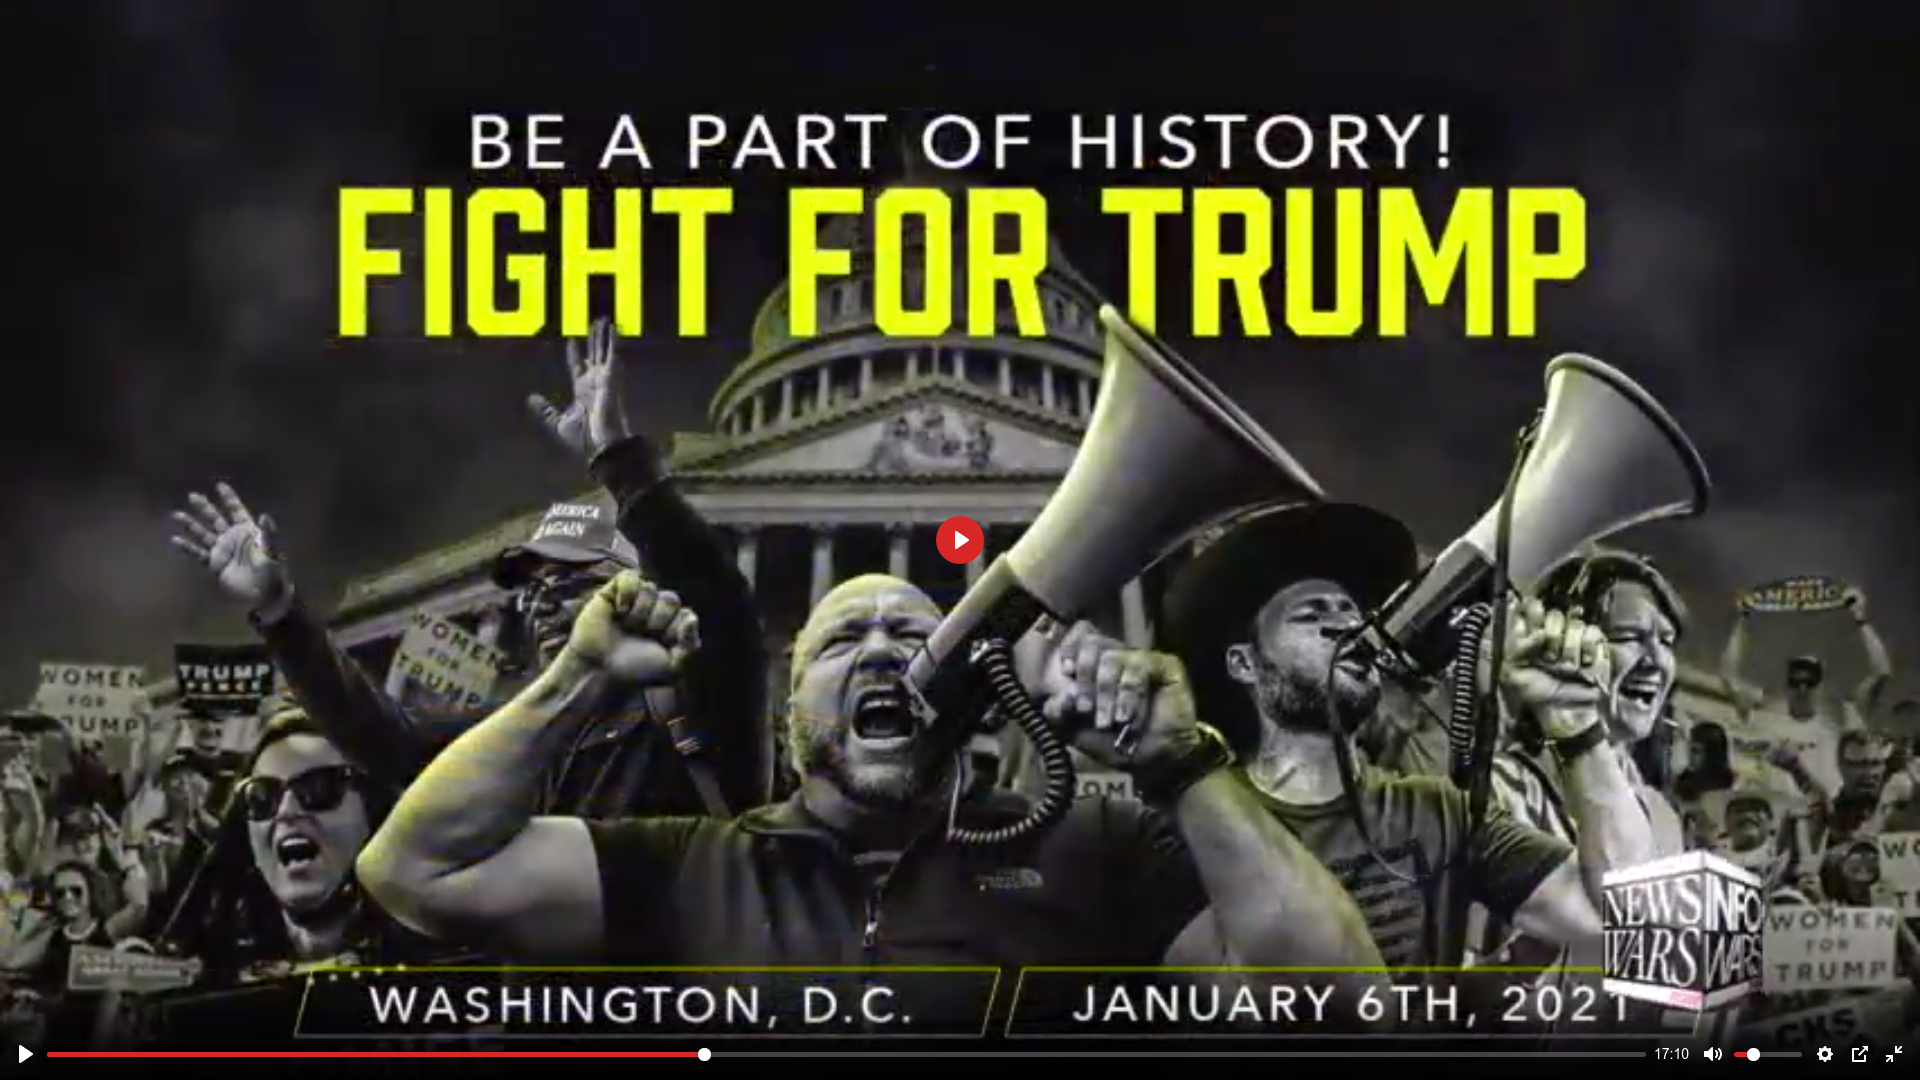 2021-01-06 - Wednesday - FIGHT FOR TRUMP JAN6 - STOP THE STEAL - Screenshot at 2020-12-30 12:14:29 Fight For Trump.png